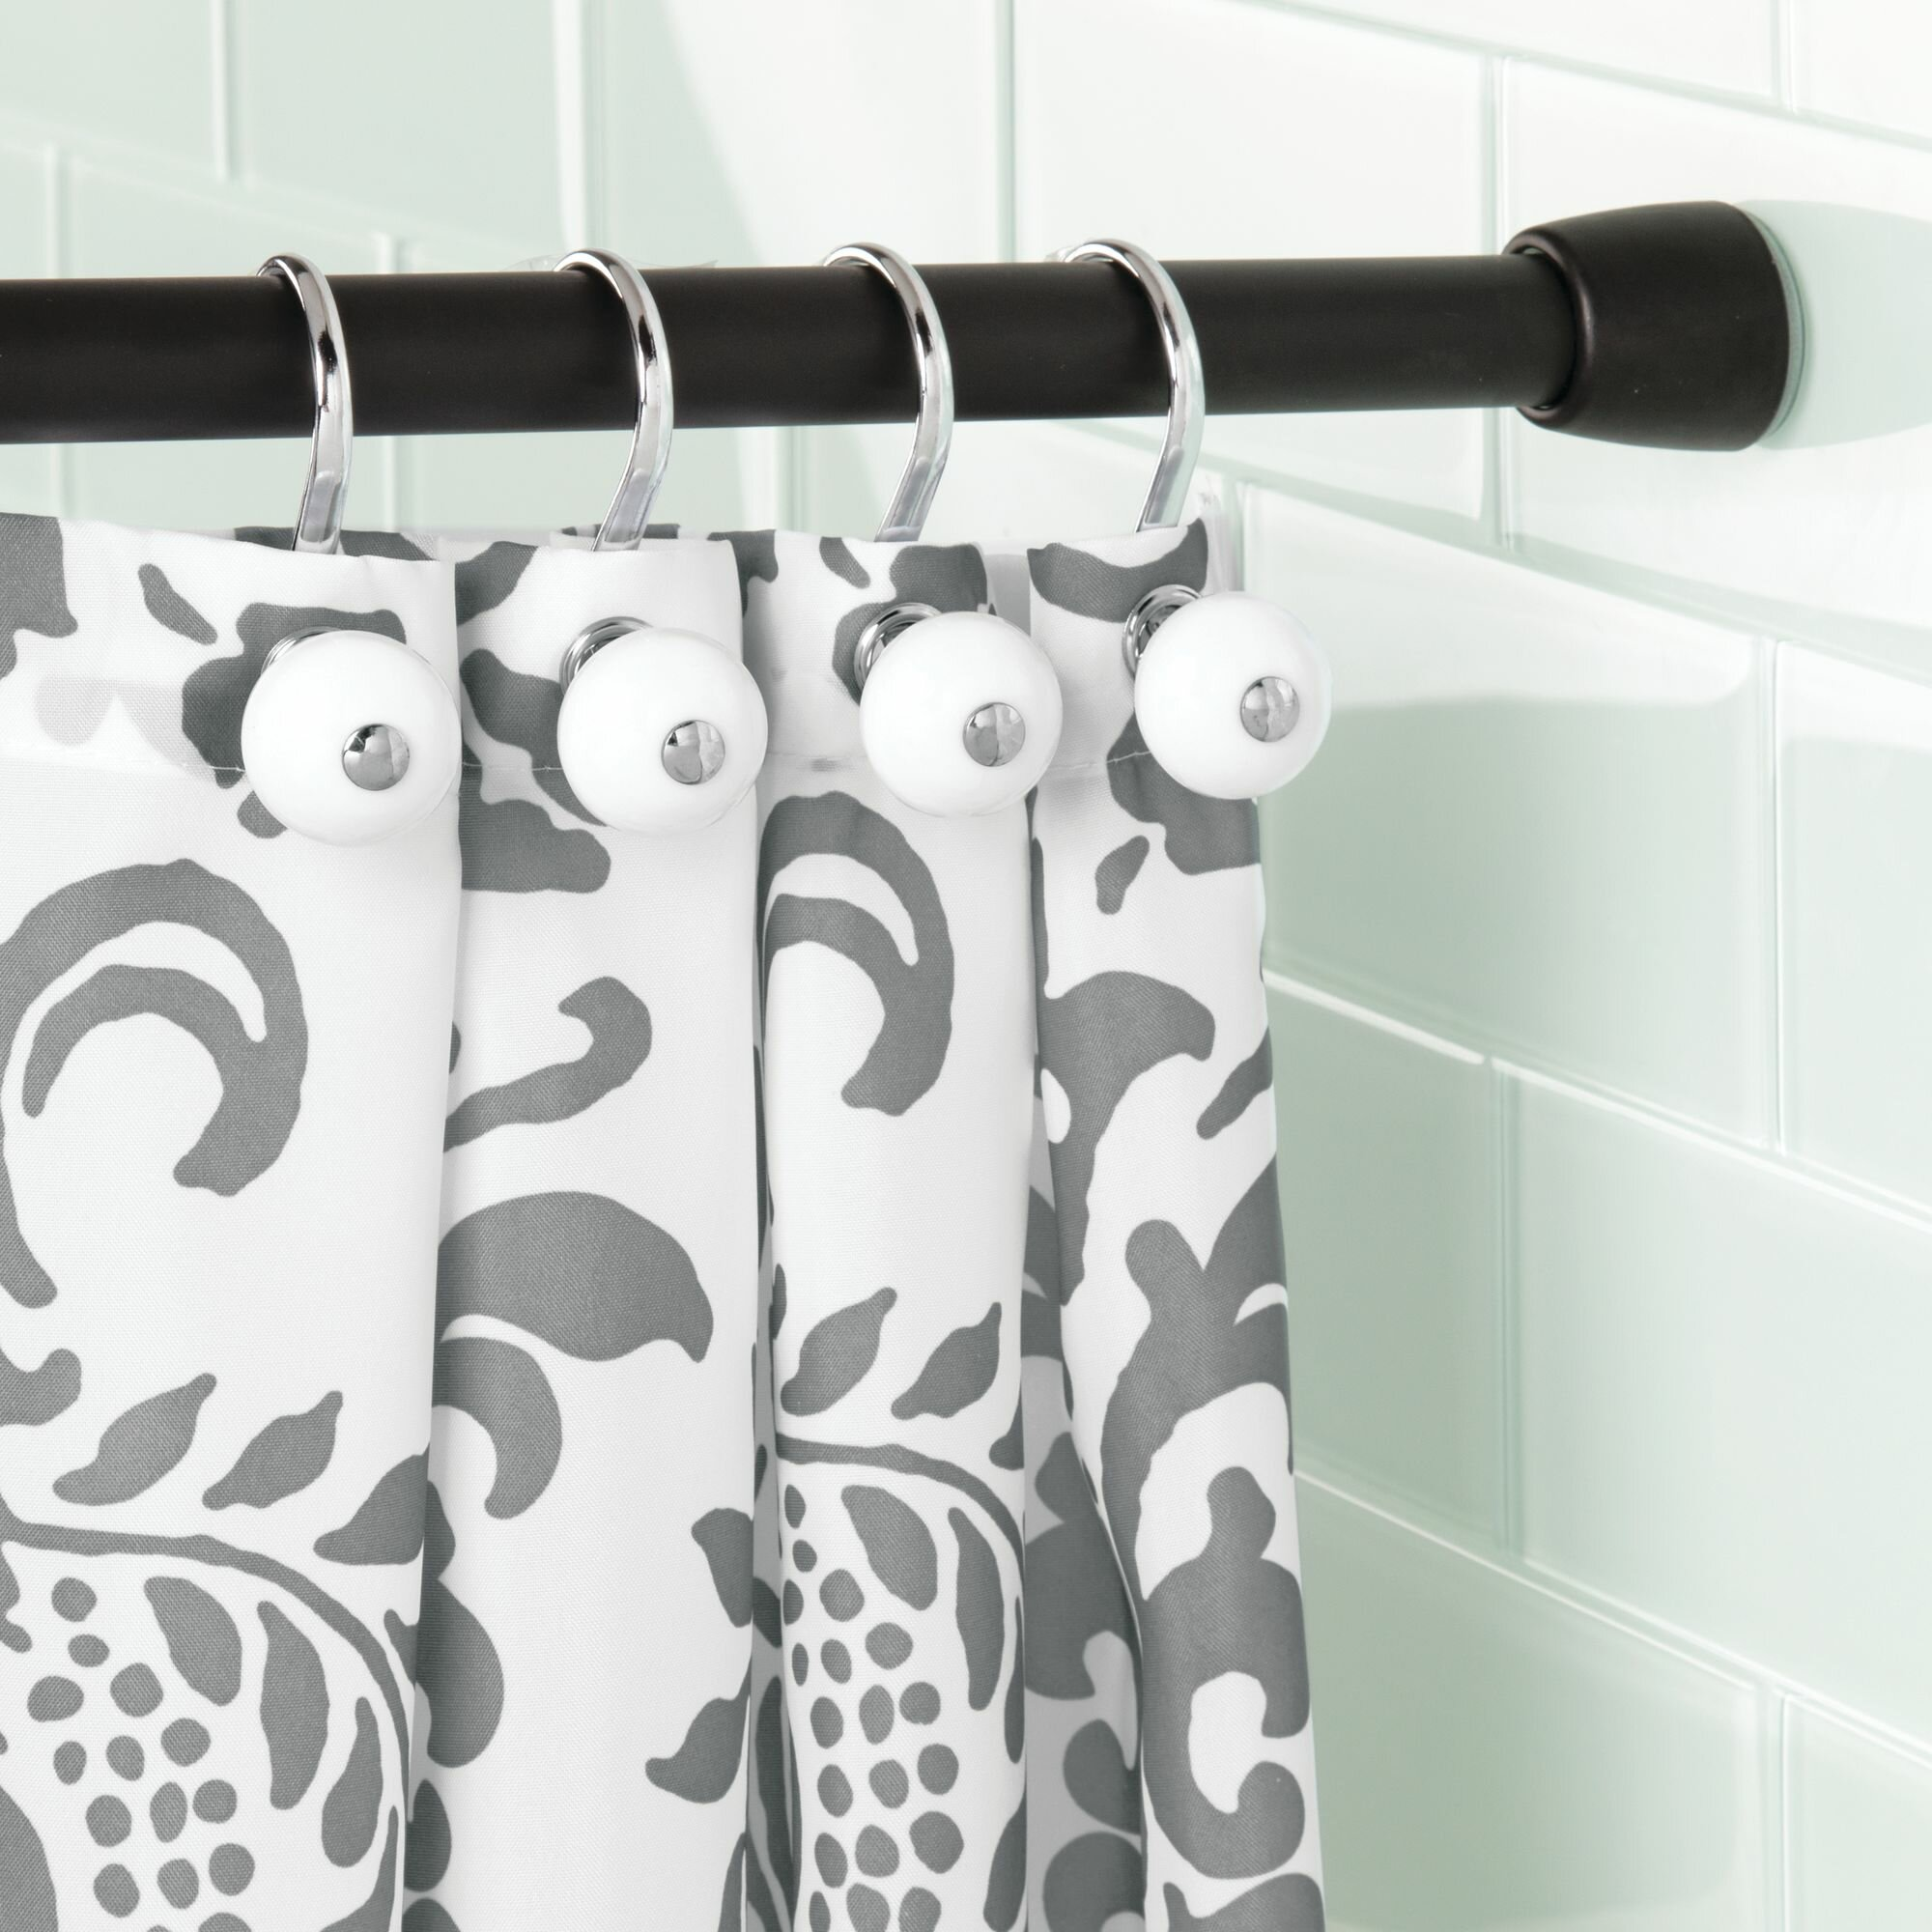 InterDesign Cameo 108 Adjustable Straight Tension Shower Curtain Rod Reviews